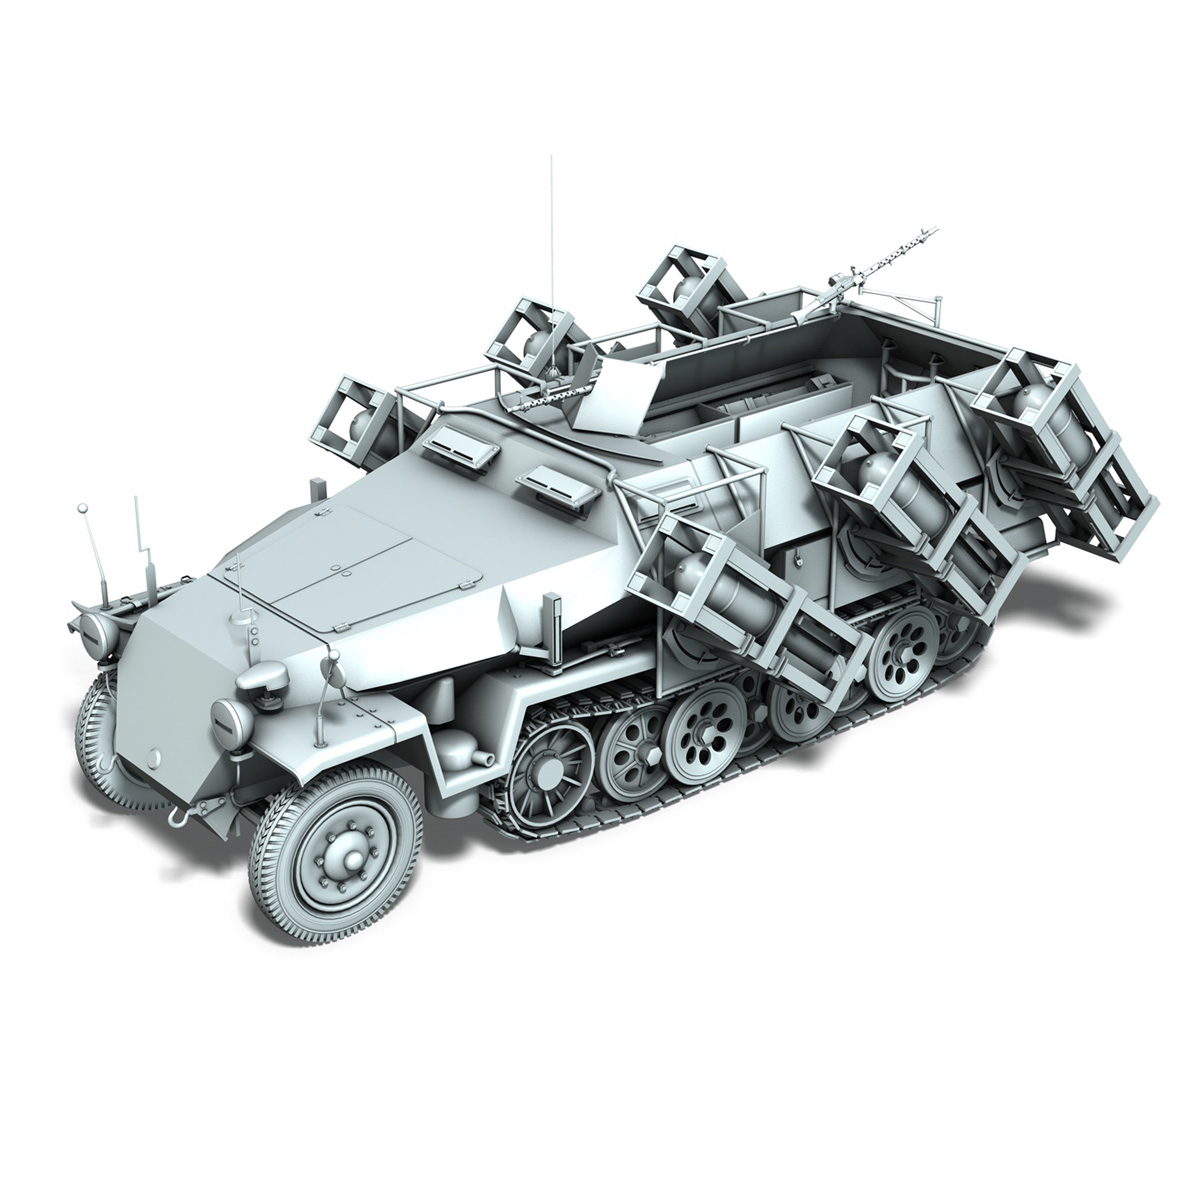 sd.kfz 251/1 ausf.c – ground stuka – 24pd 3d model 3ds fbx c4d lwo obj 292209